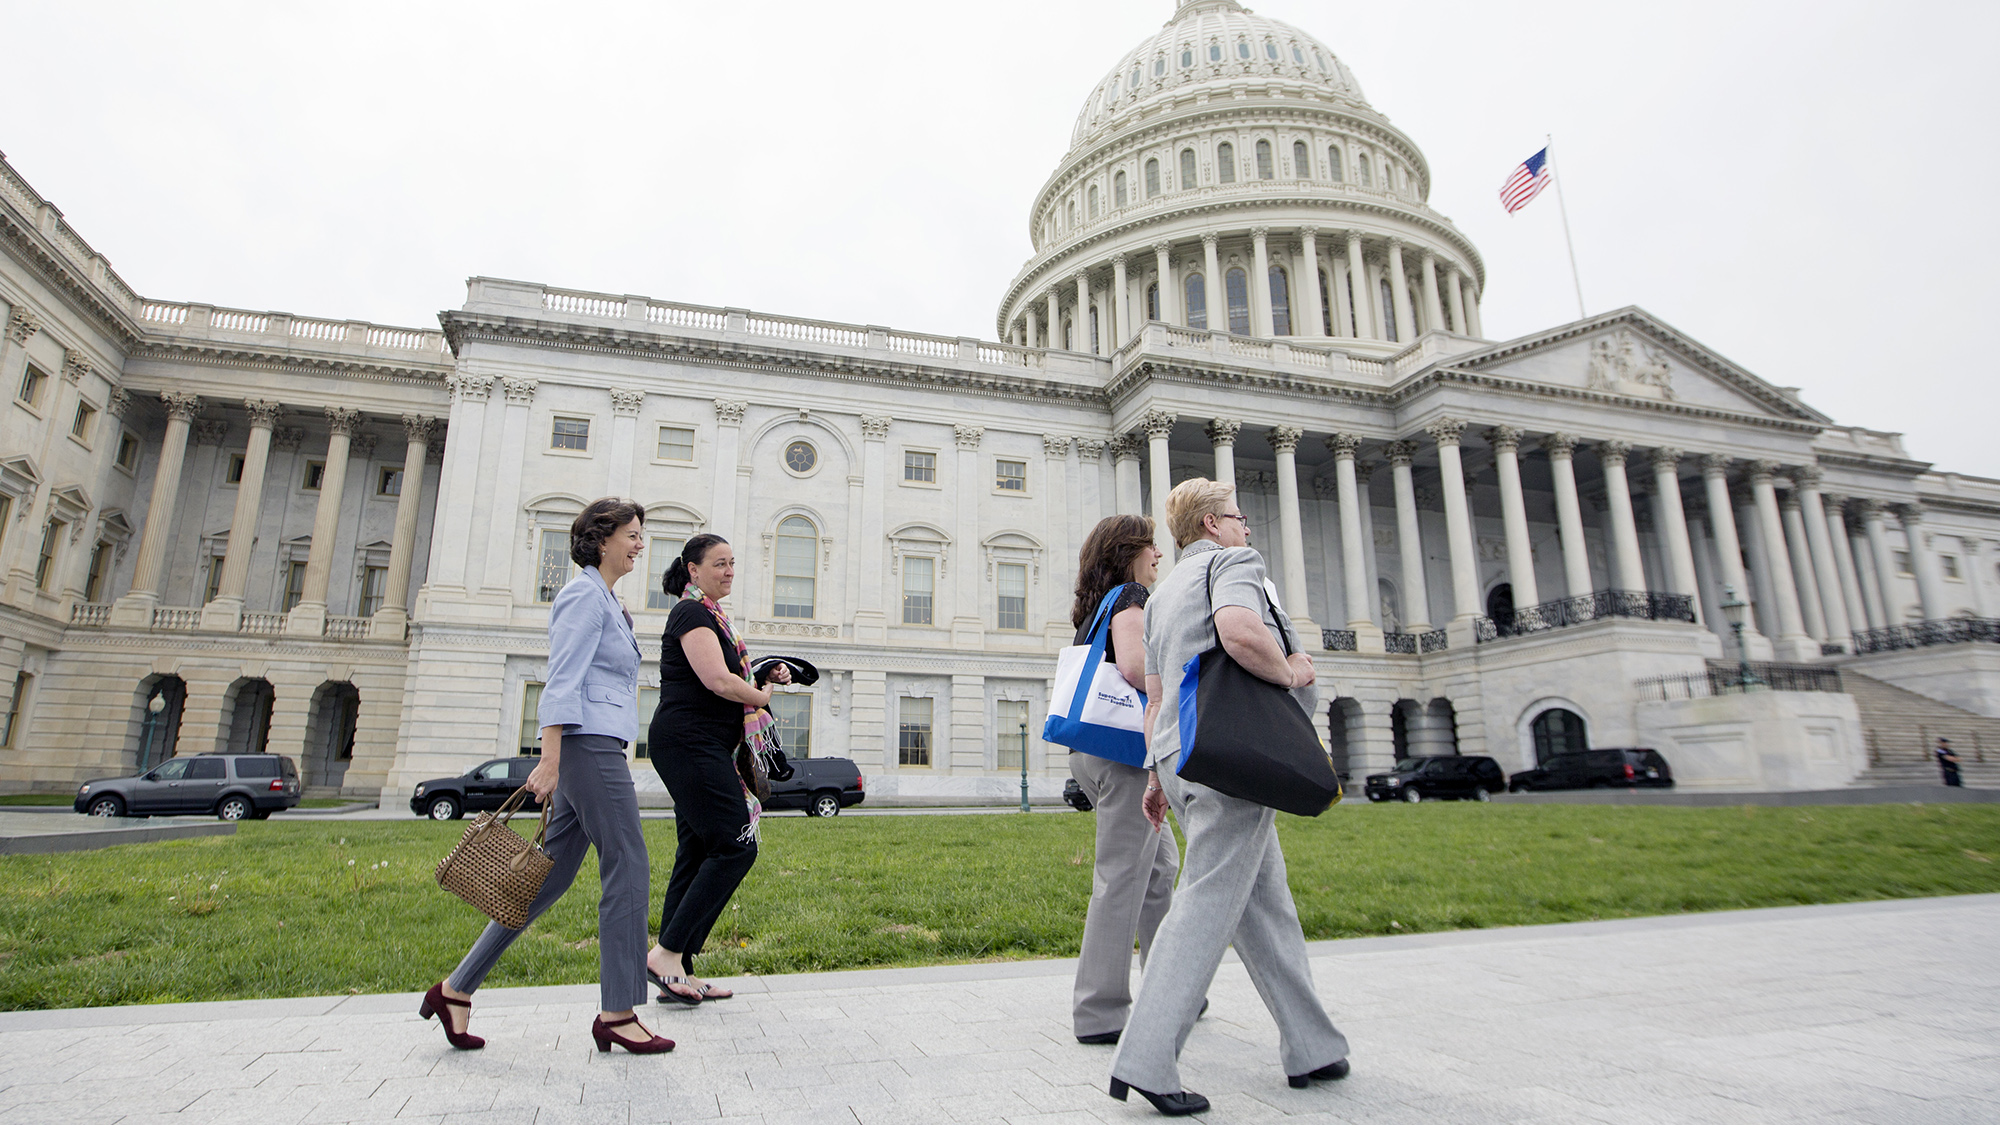 Supermoms from New York—Laura Stanley (right), Pat Assortato (left), Sarah Henris (second from left) walk to the Capitol with Pew's Laura Rogers.